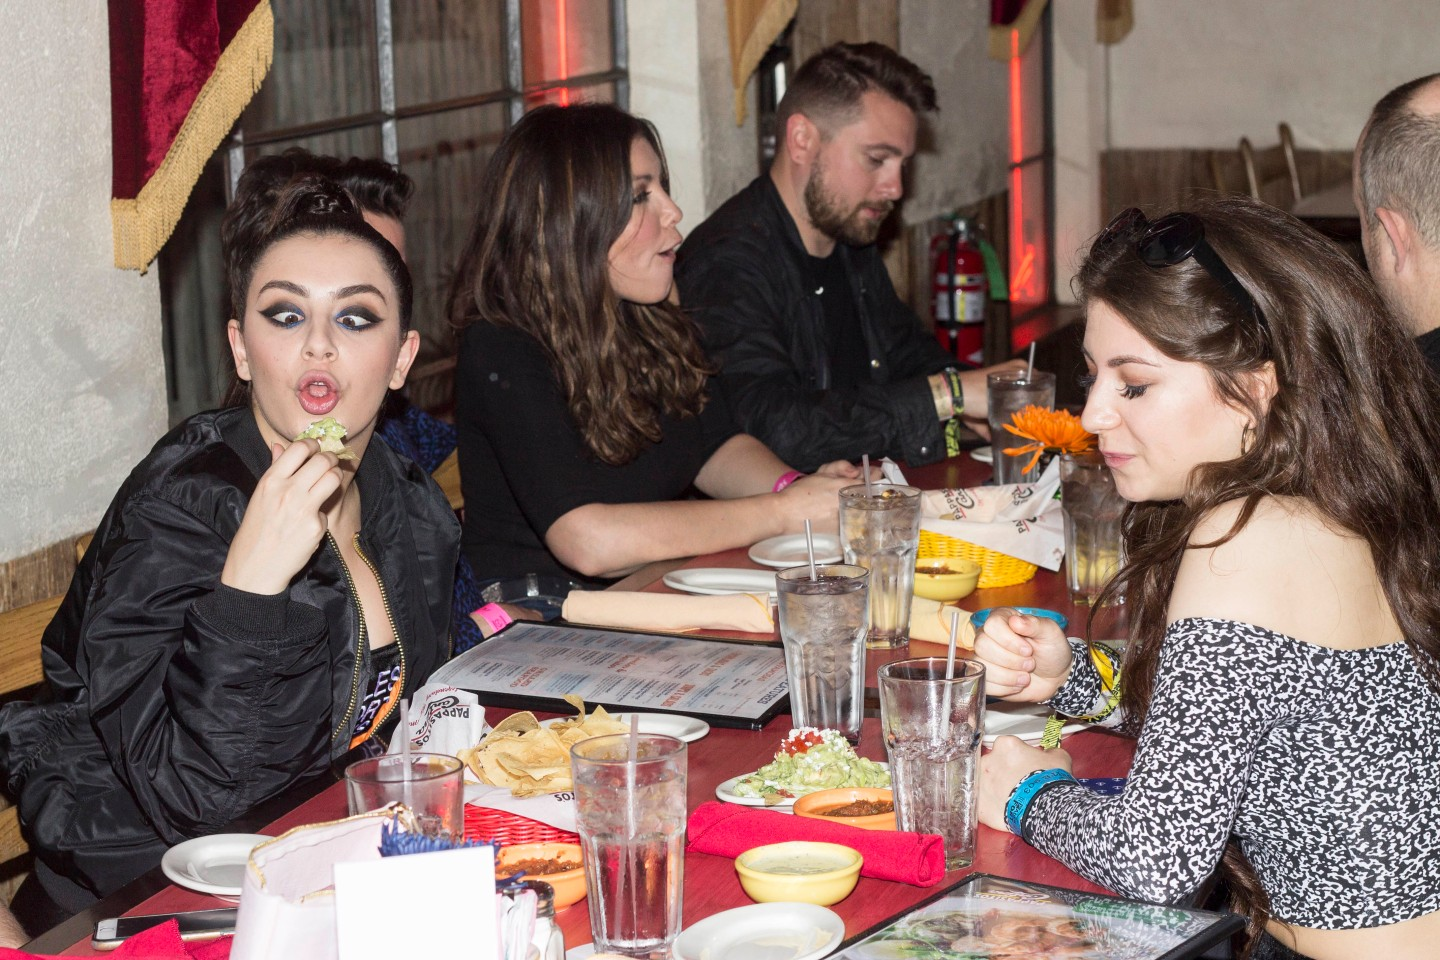 What It's Really Like To Go Backstage With Charli XCX